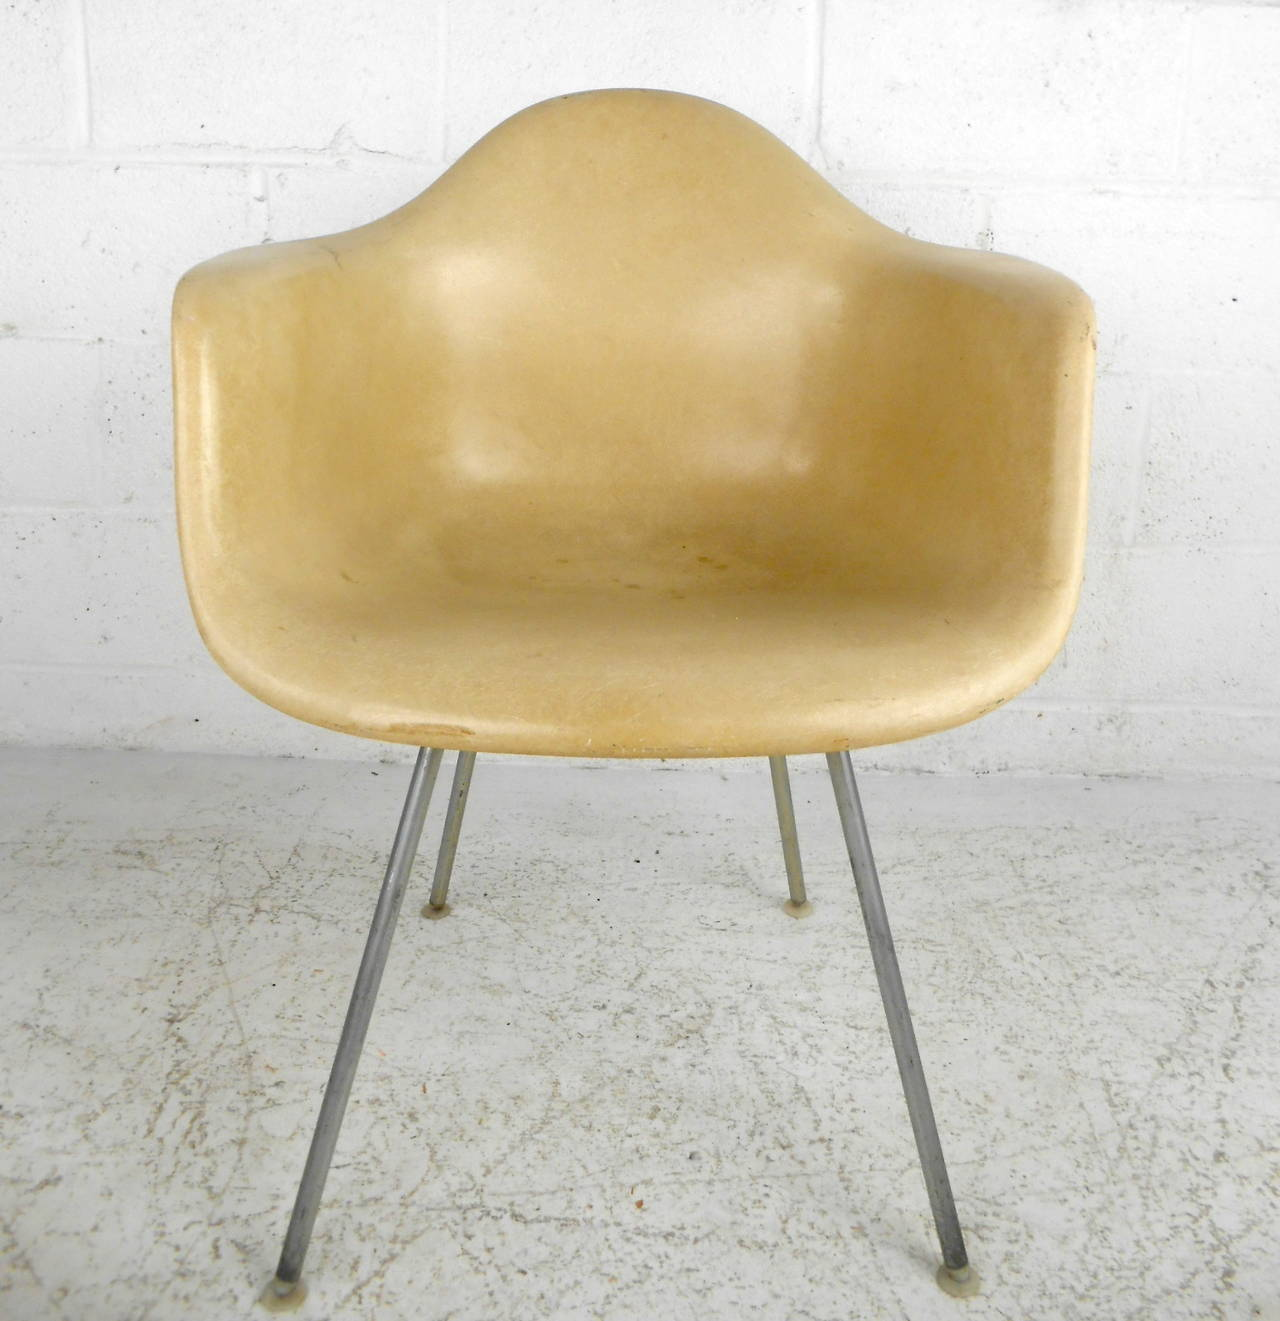 mid century modern fiberglass shell chair by eames for herman miller